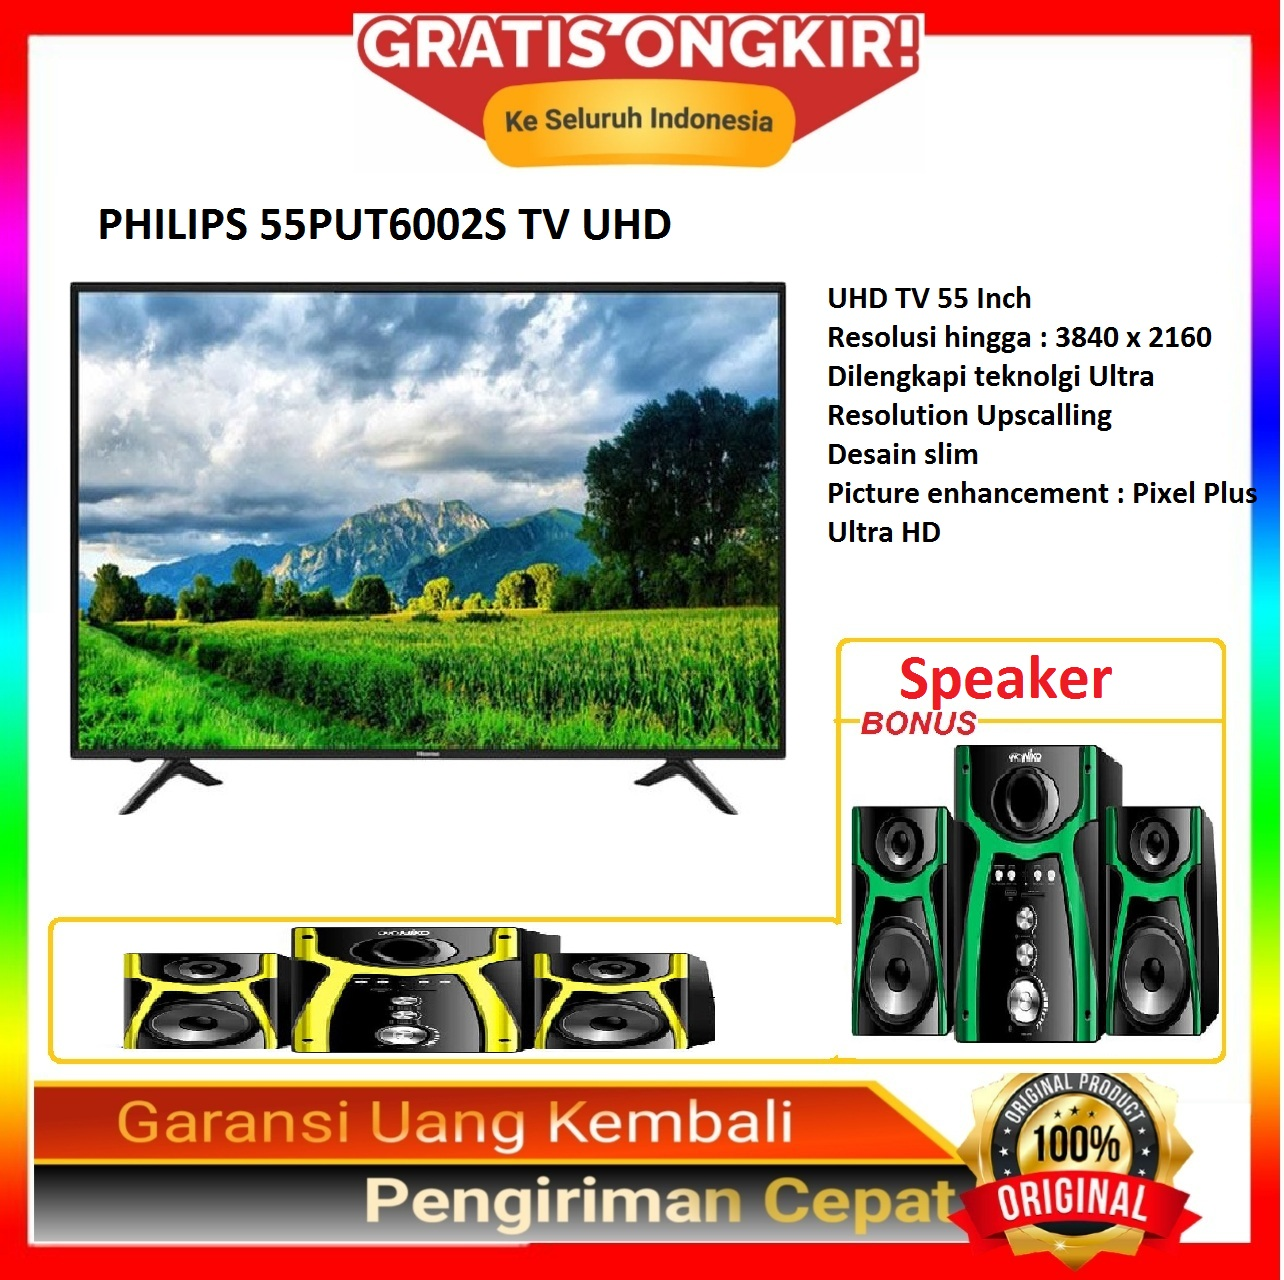 PHILIPS 55PUT6002S TV UHD